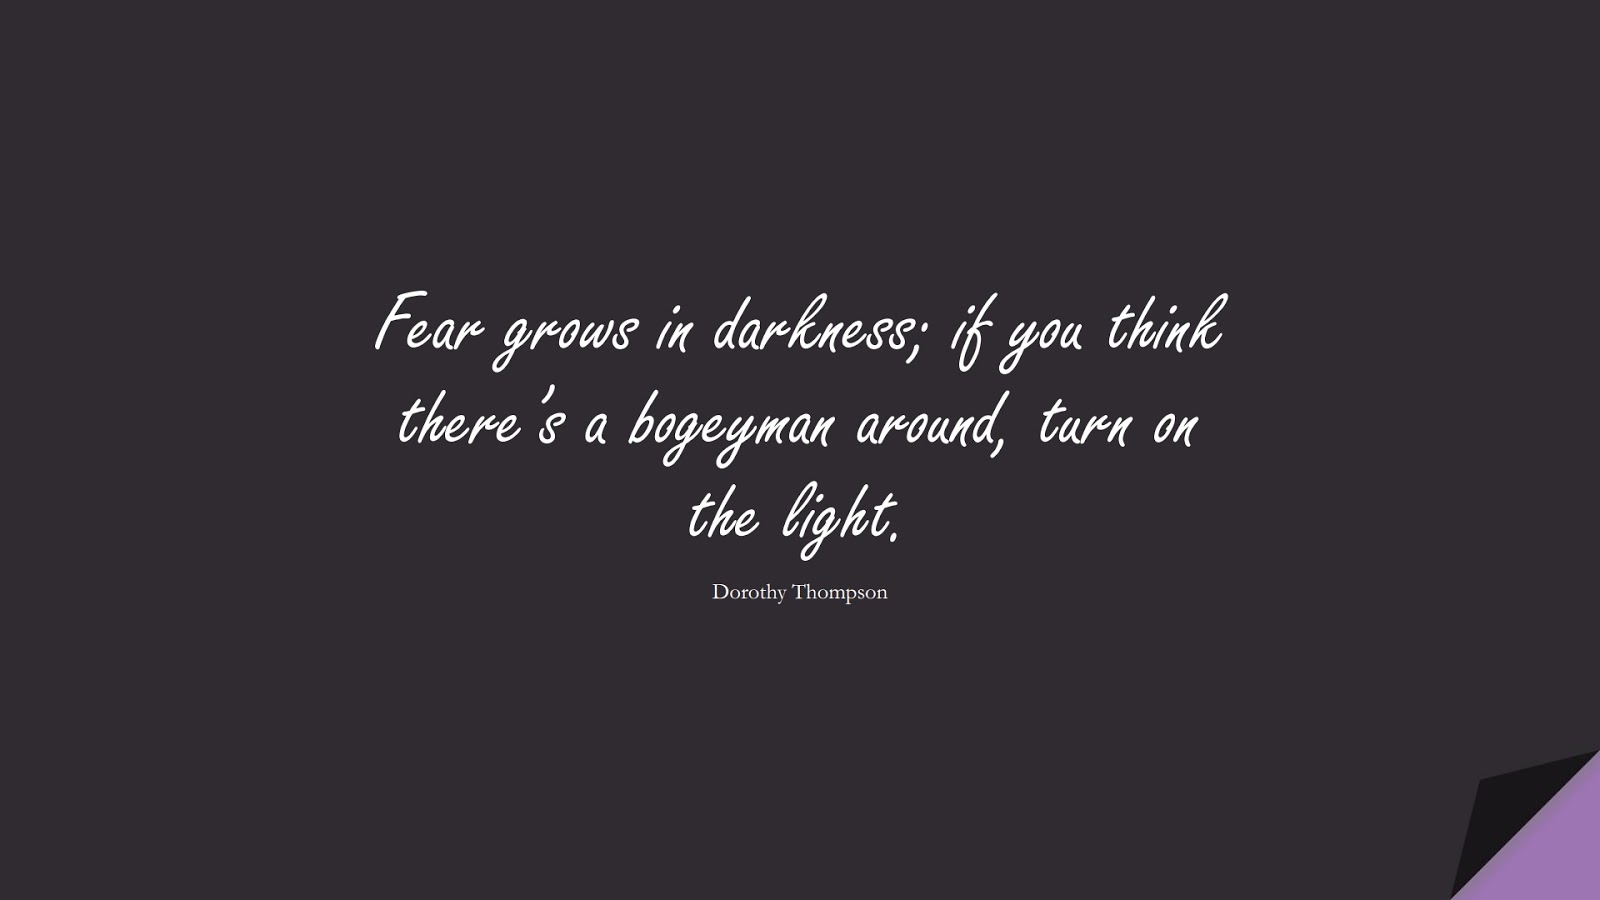 Fear grows in darkness; if you think there's a bogeyman around, turn on the light. (Dorothy Thompson);  #HopeQuotes